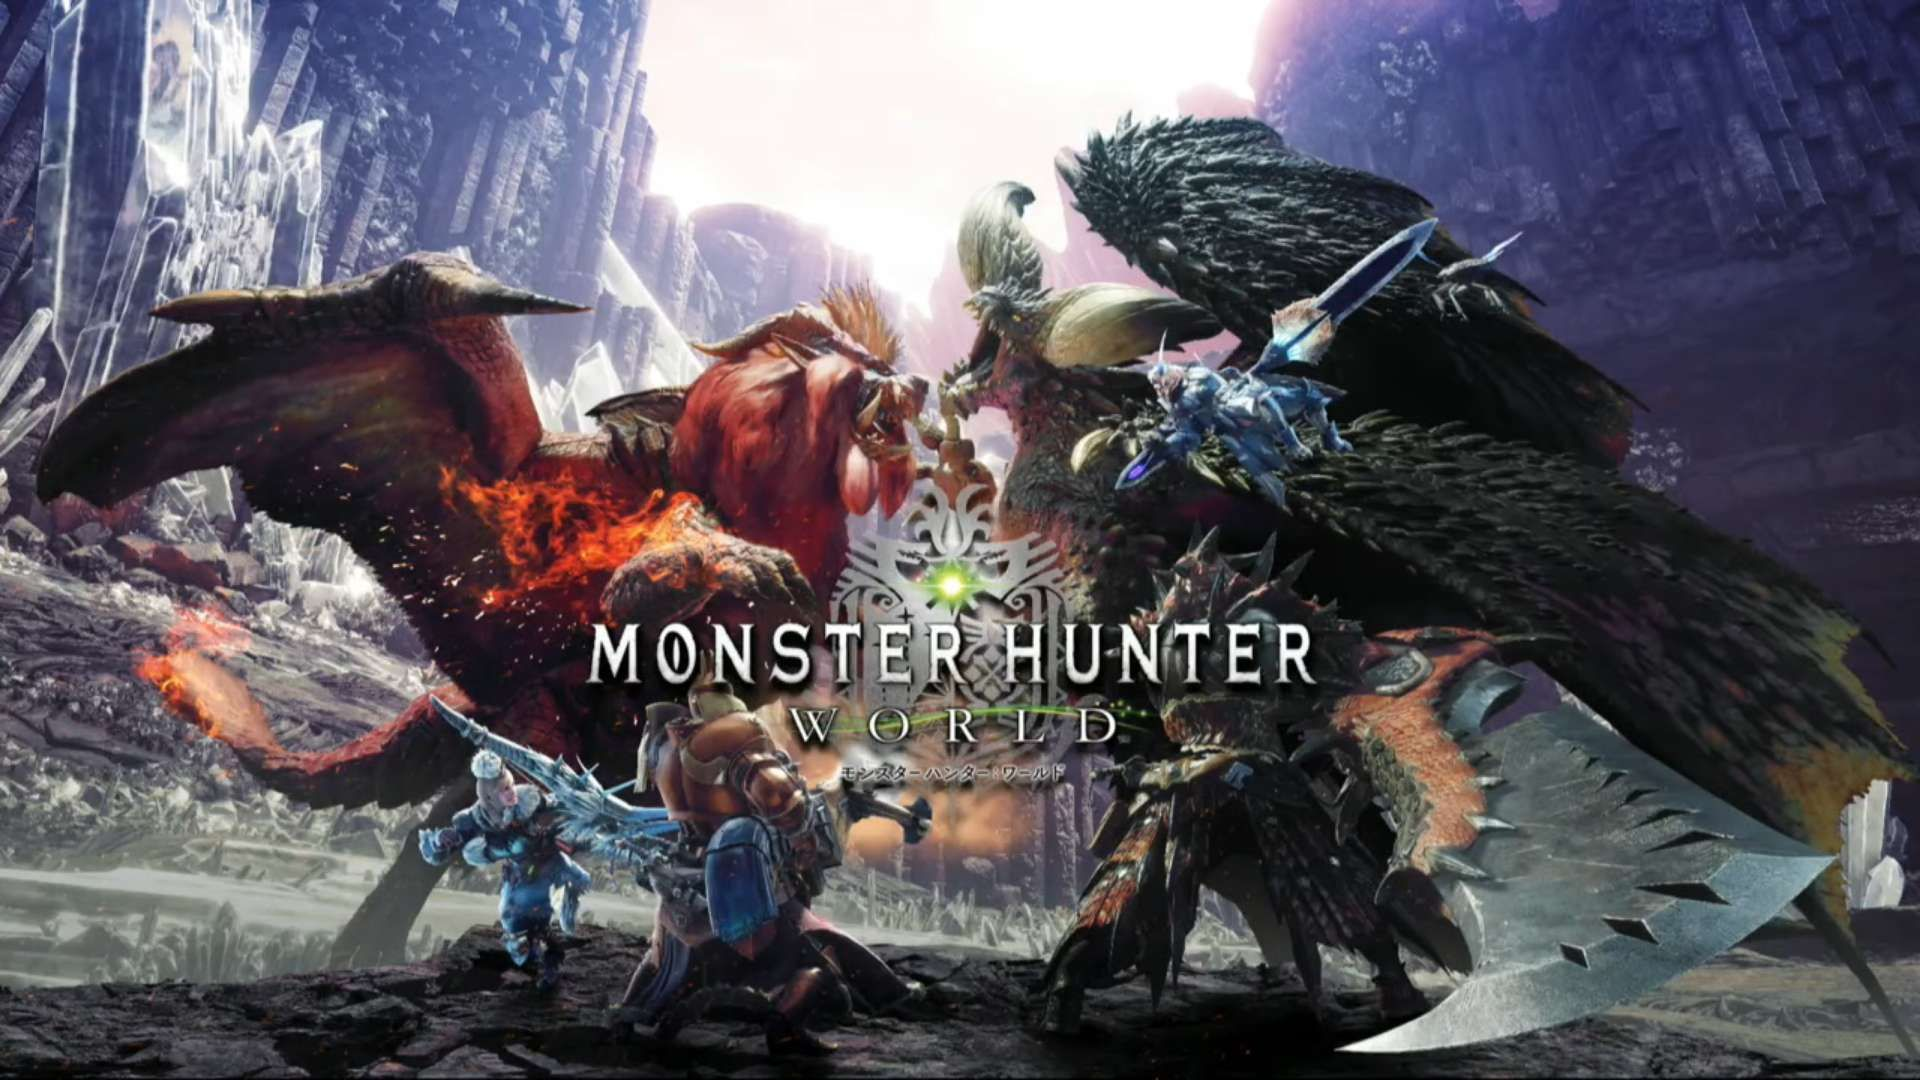 Un nuevo video prepara el terreno para la llegada de Behemoth a Monster Hunter